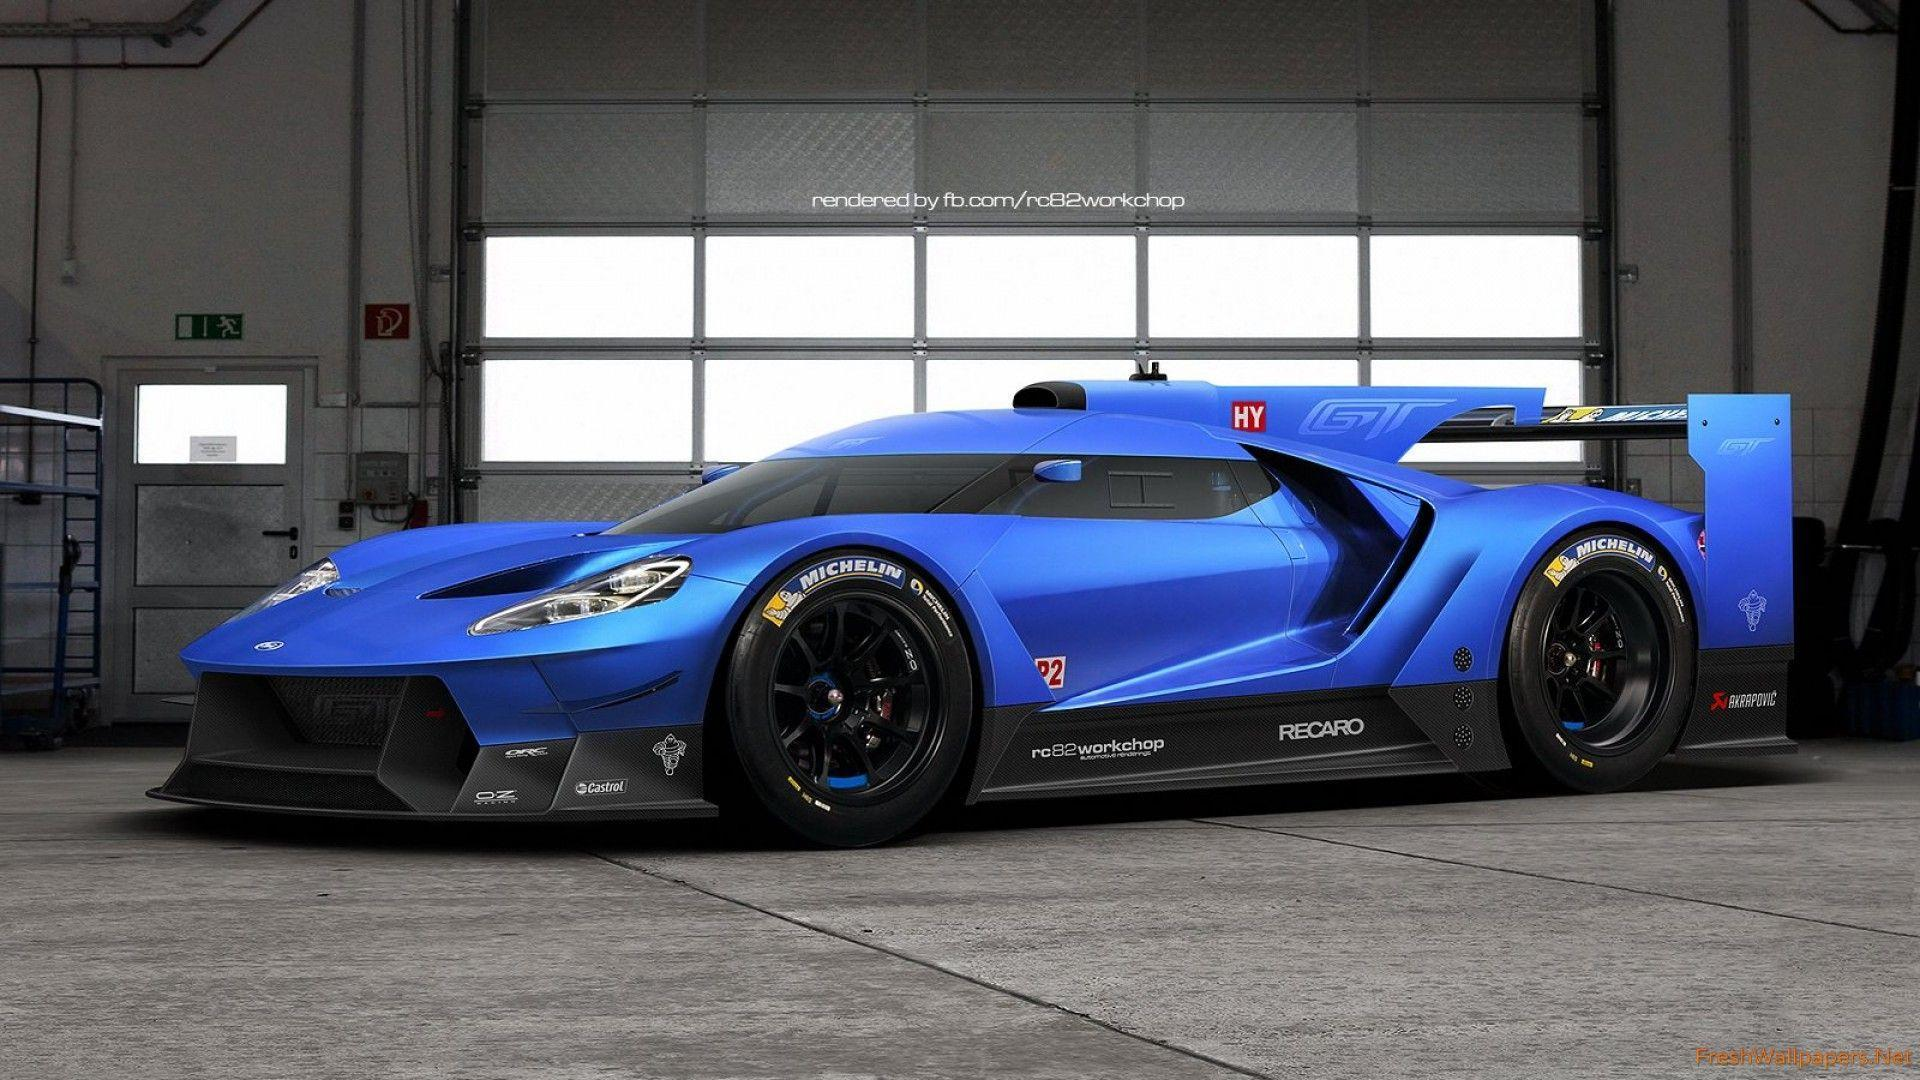 2016 Le Mans Ford GT wallpapers | Freshwallpapers